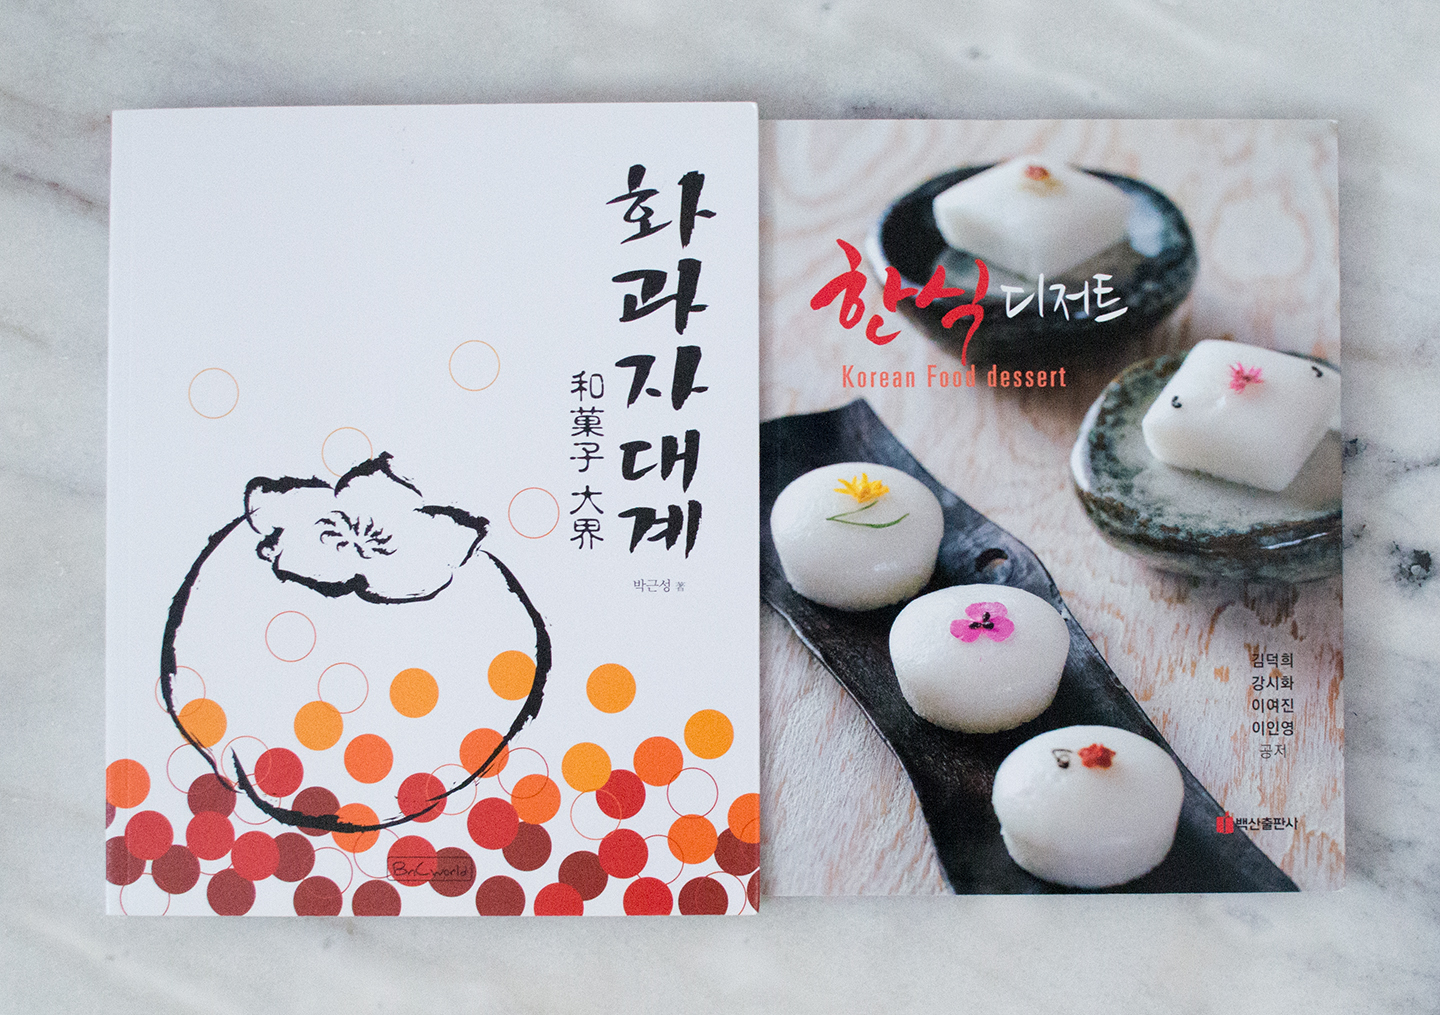 Kyobo Bookstore - Fancy Rice Cake Books